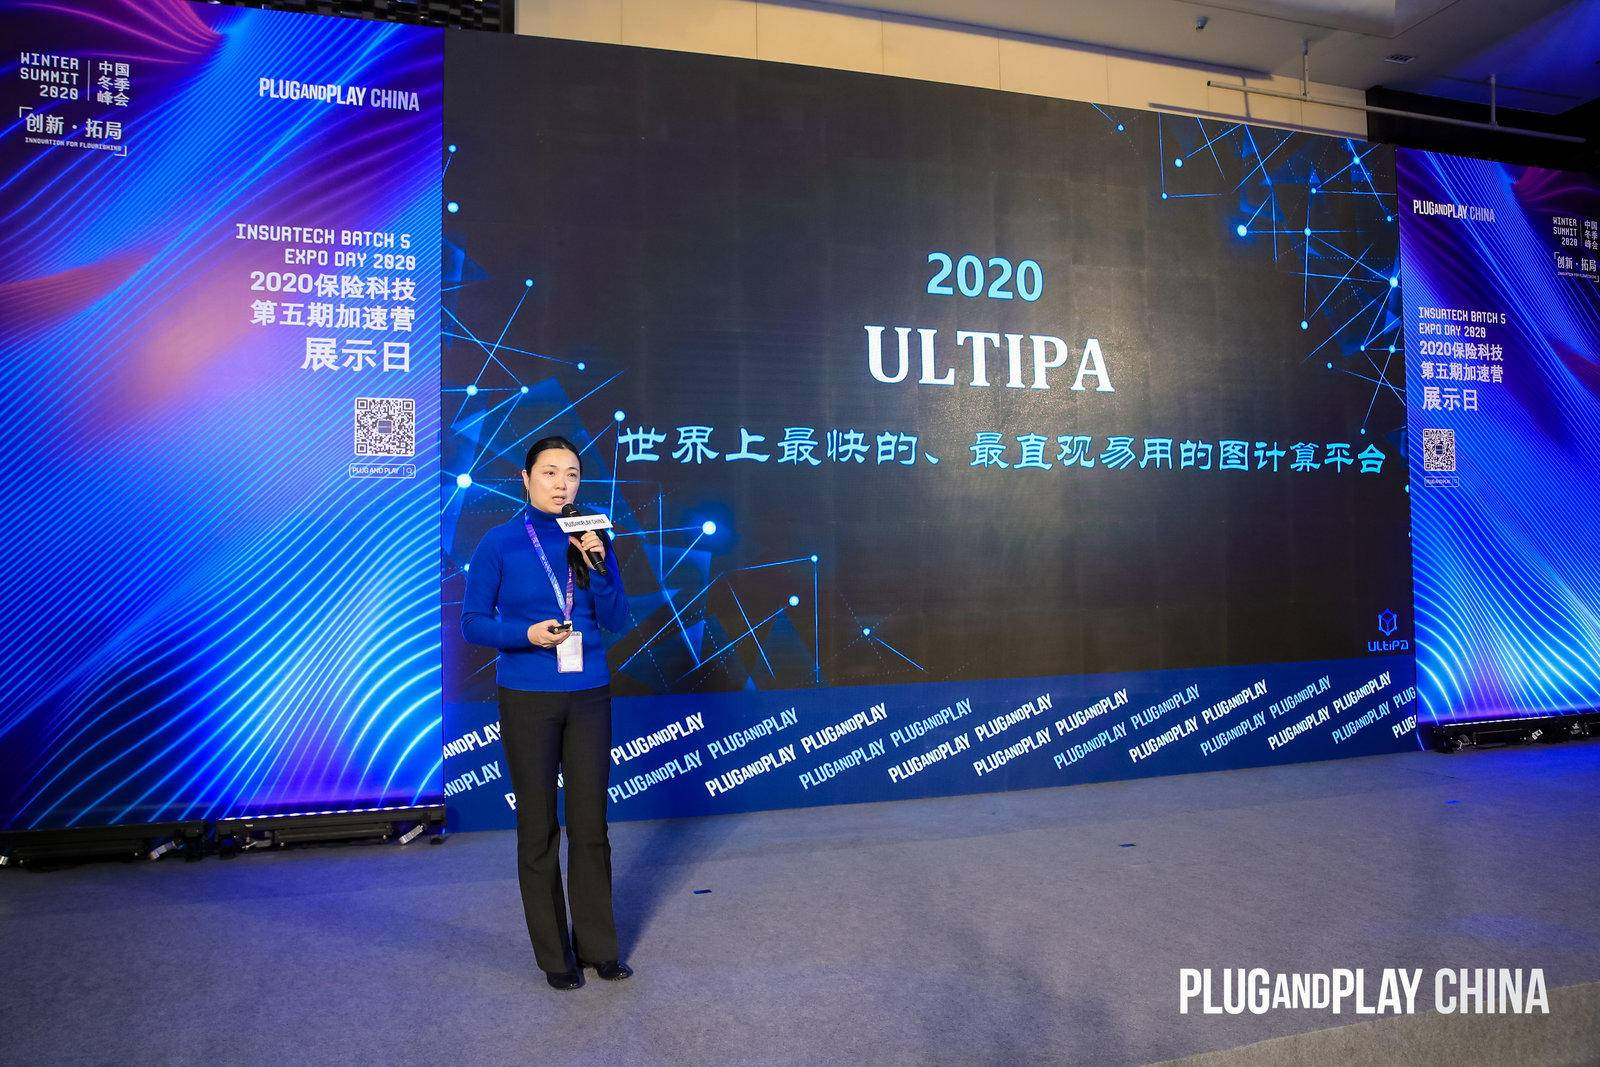 Ultipa Enables Insuretech by Reforming Business Structure of Insurance Suppliers - Ultipa Graph